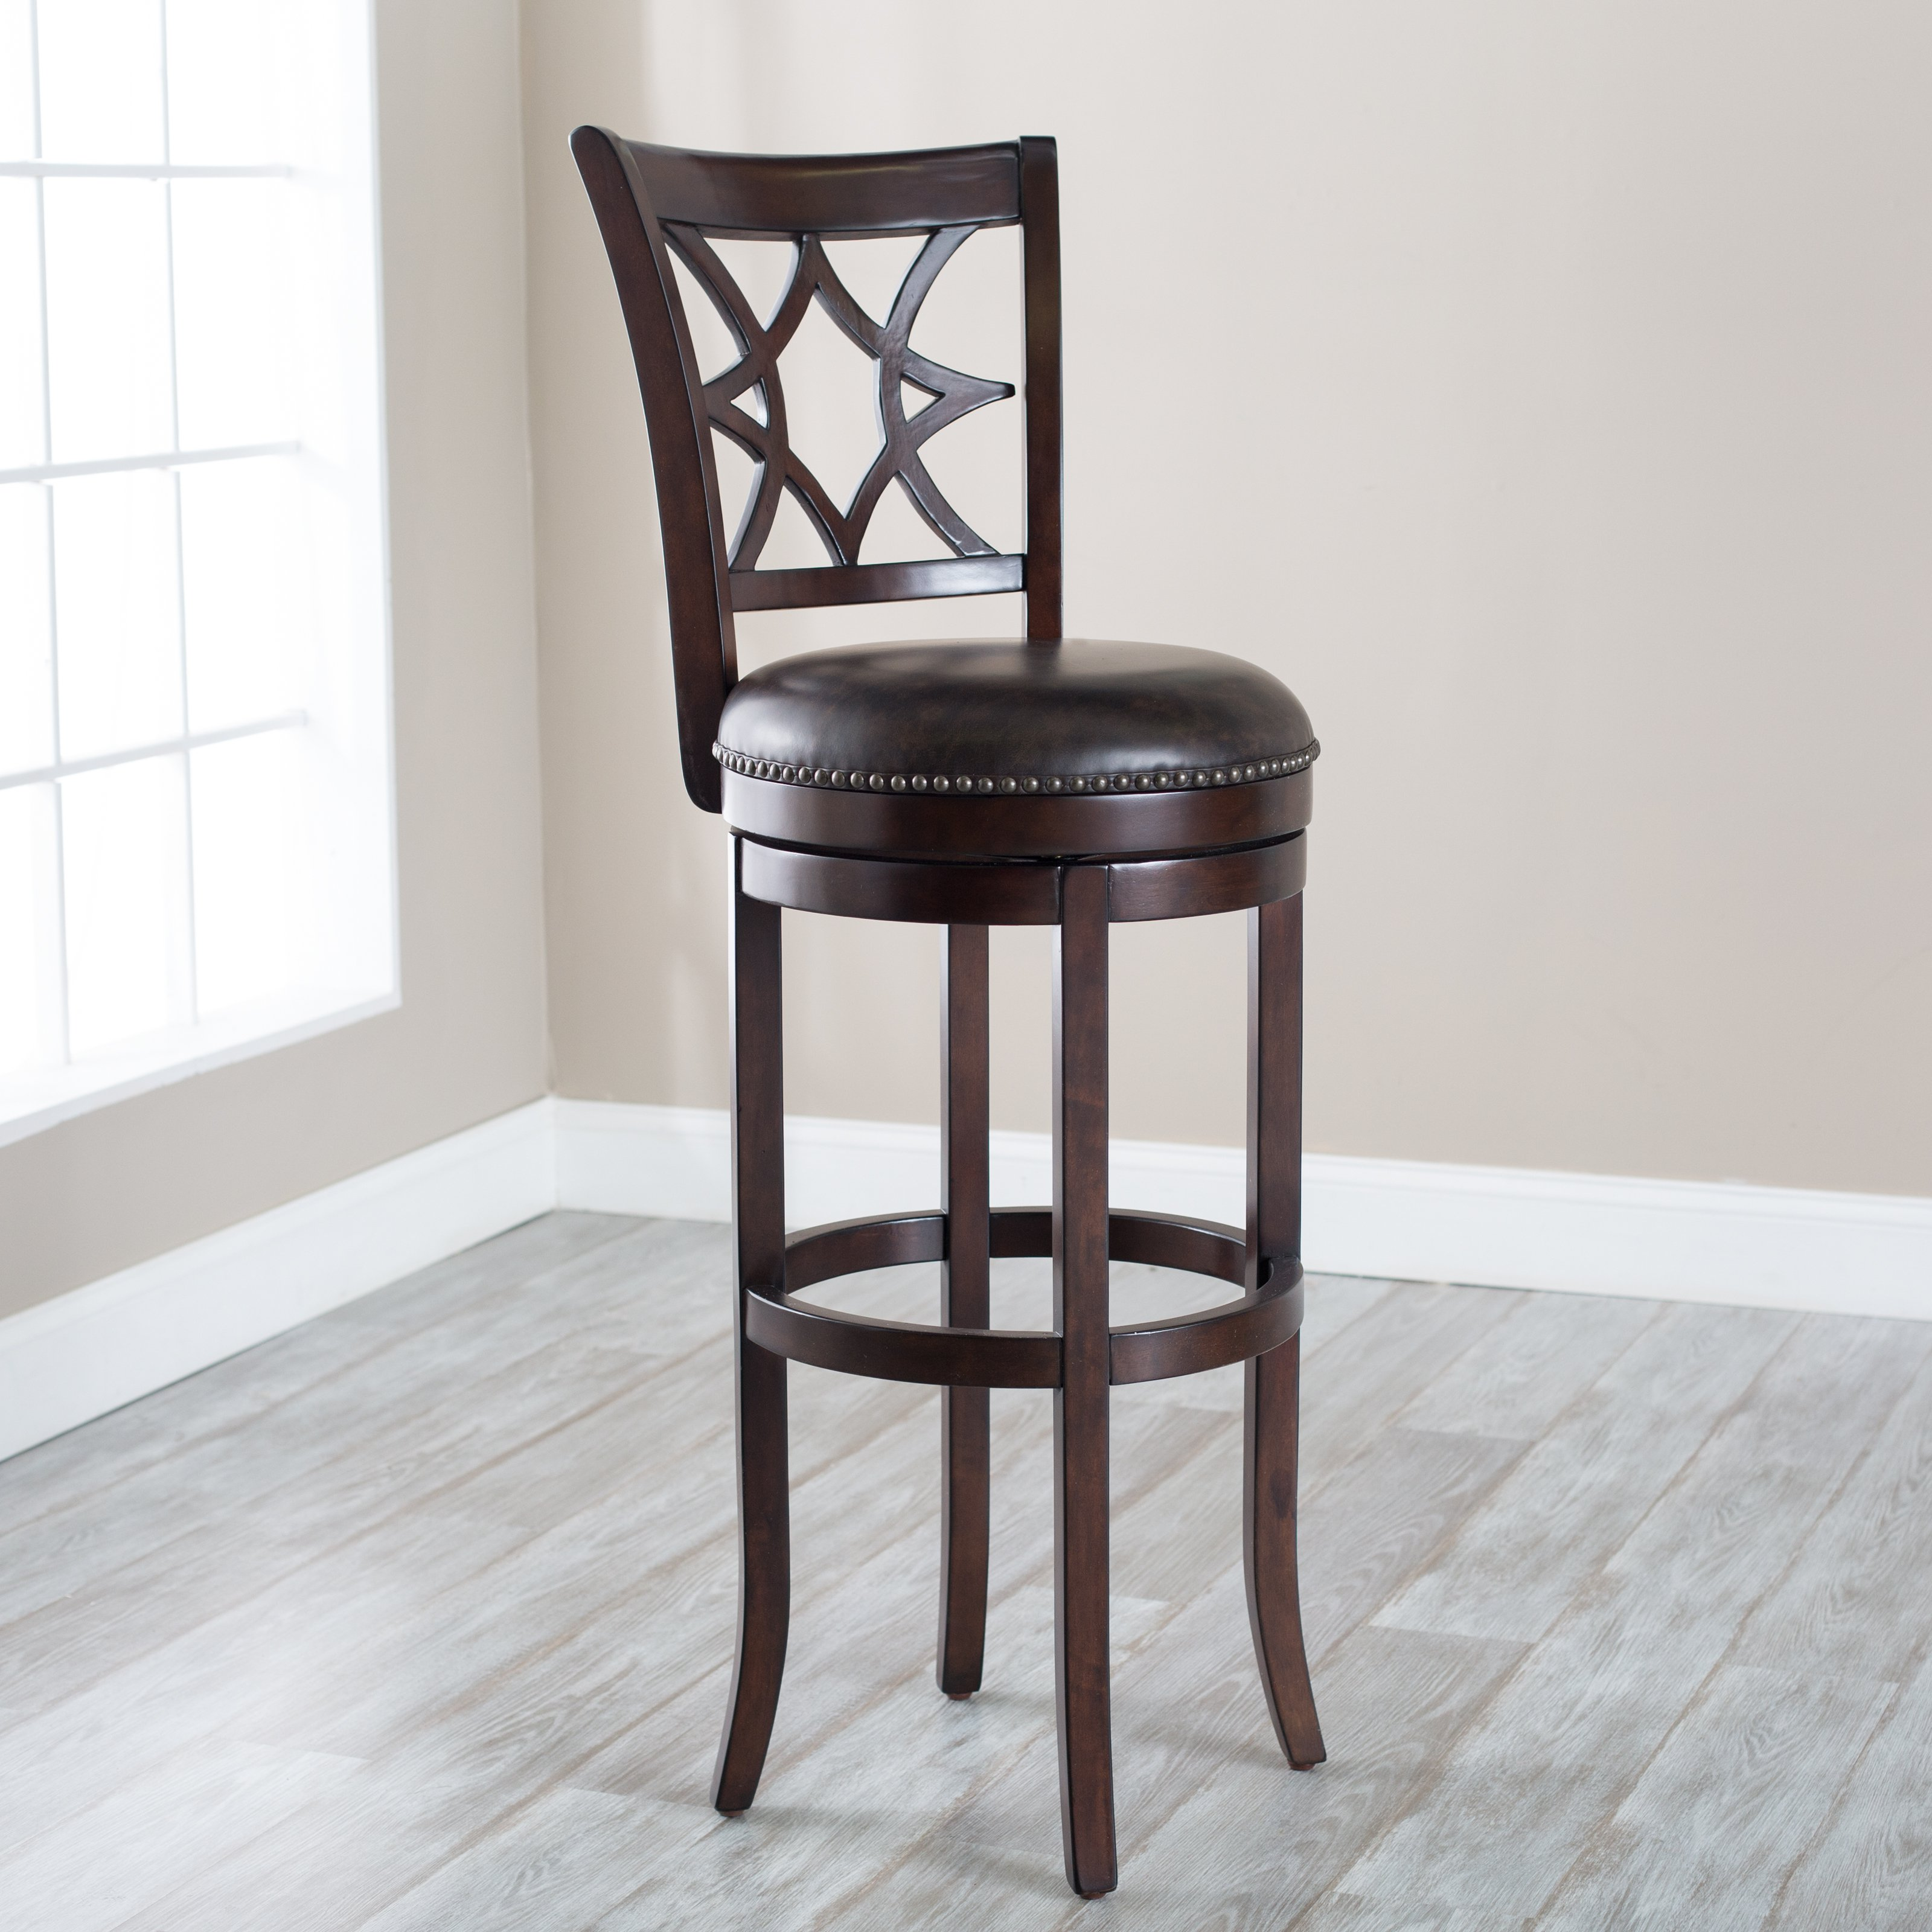 Belham Living Oliver Extra Tall Swivel Kitchen Barstool with Nailheads